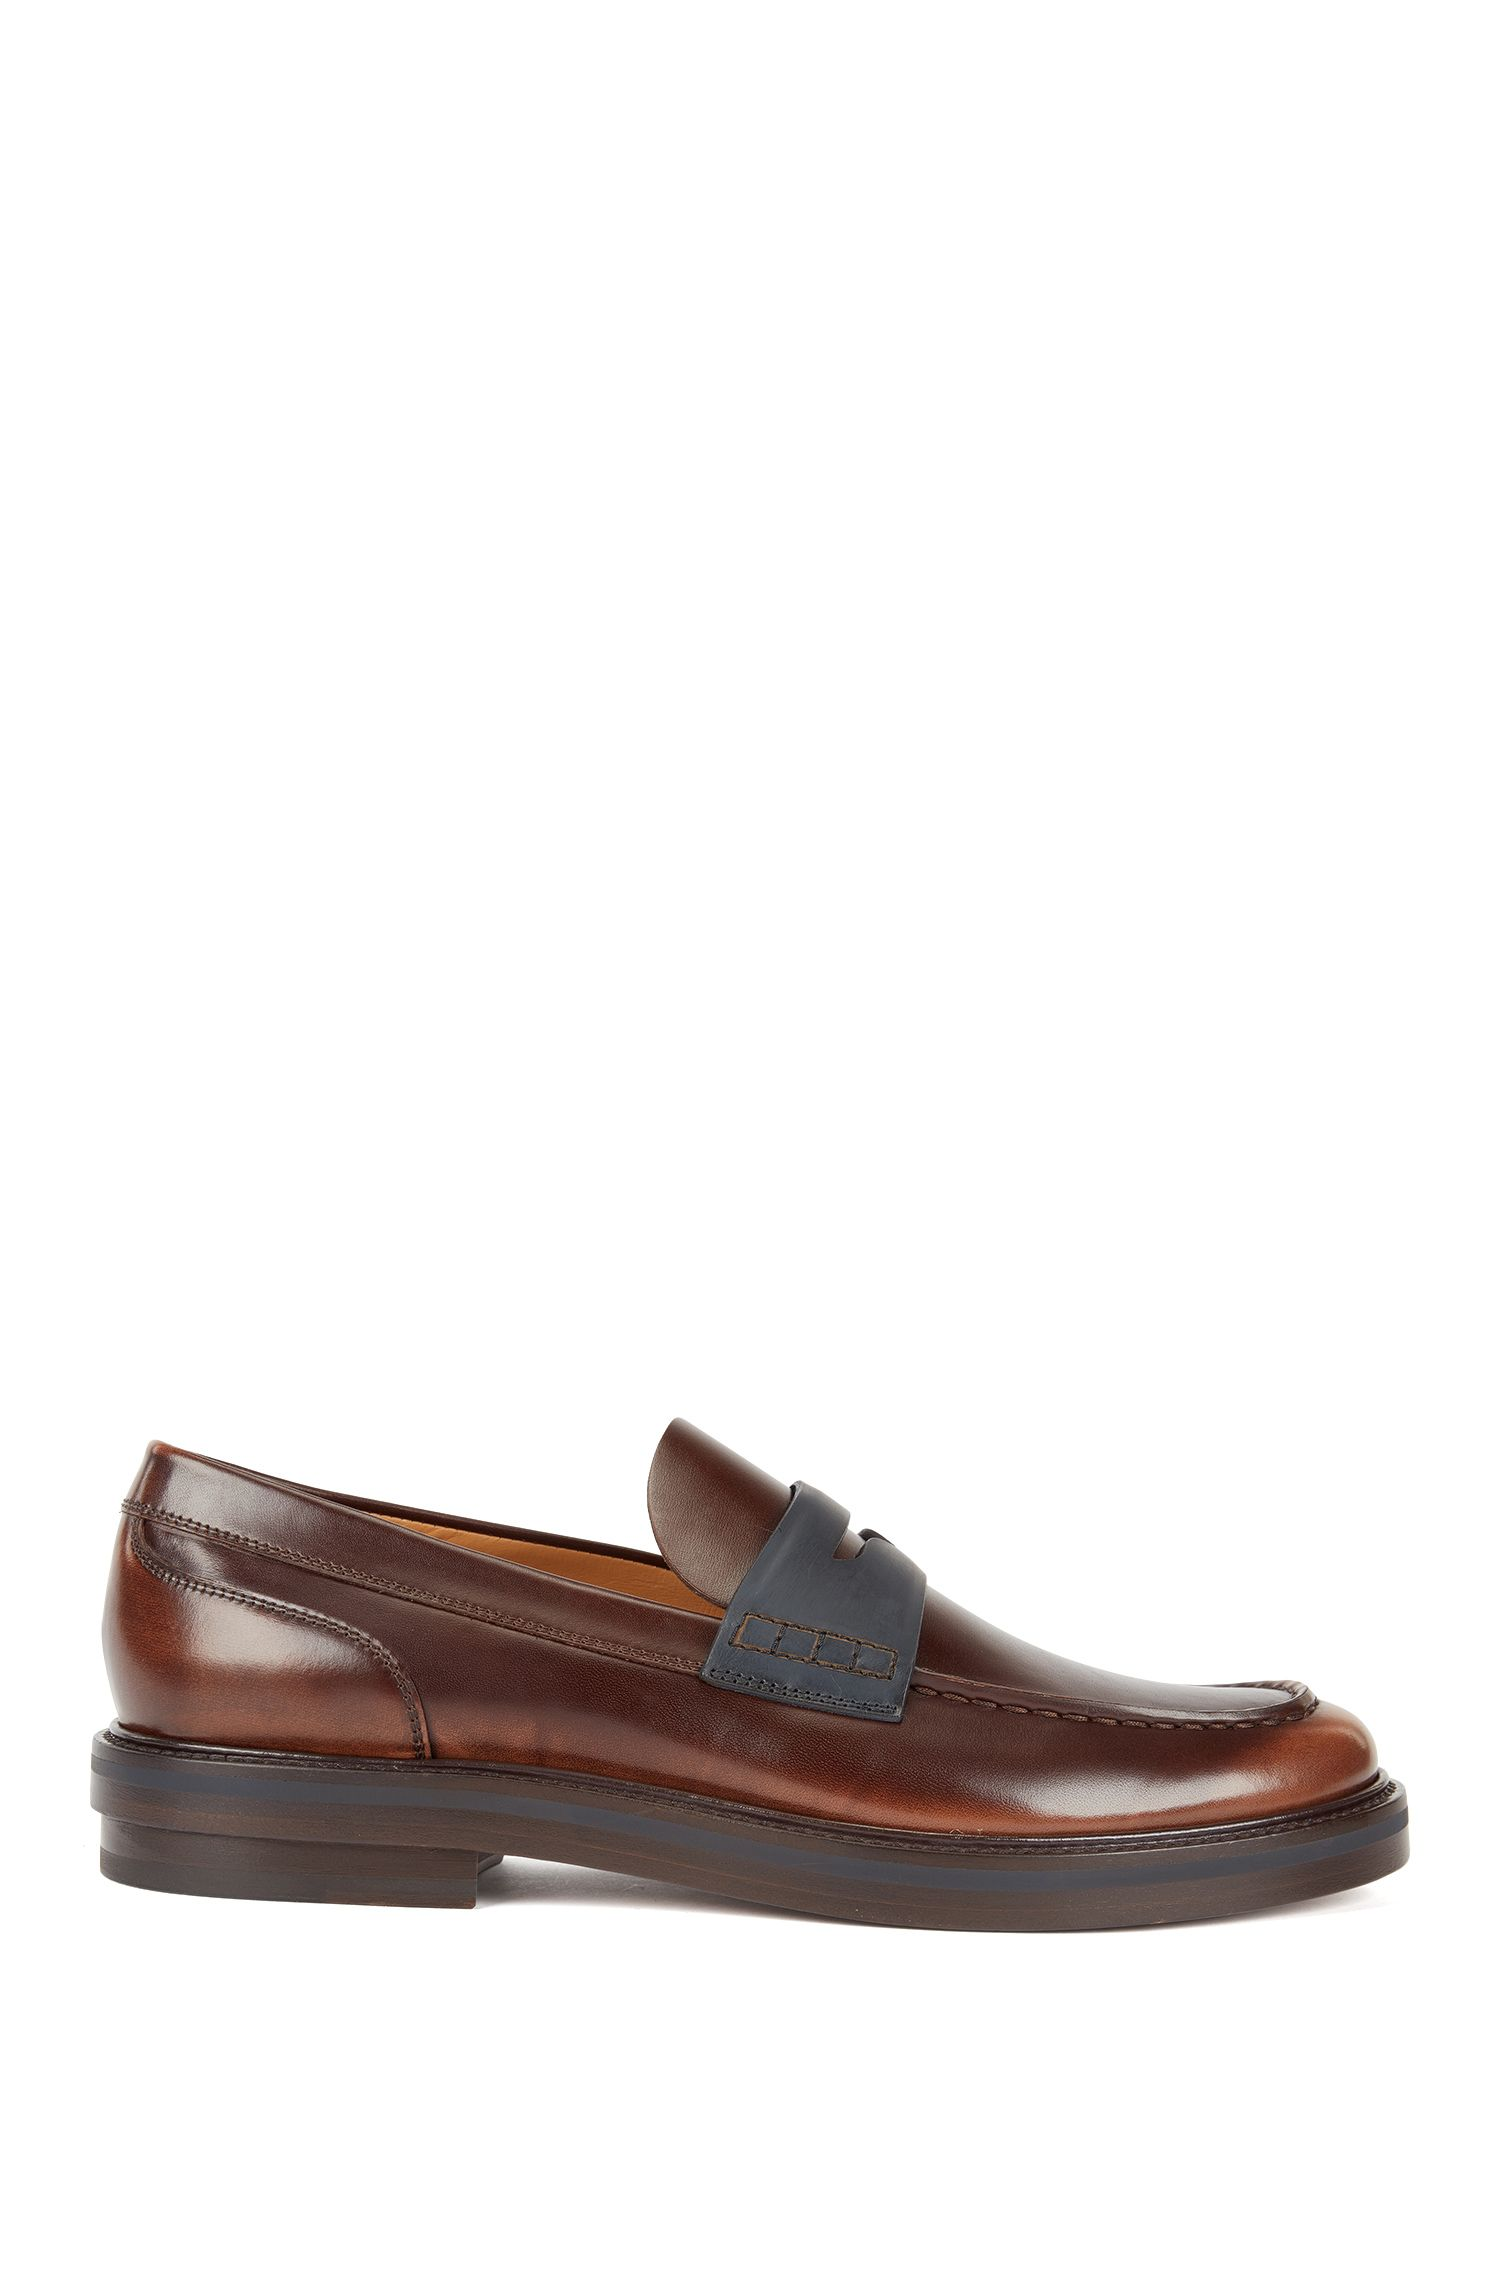 Fashion Show Capsule loafers in calf leather, Brown